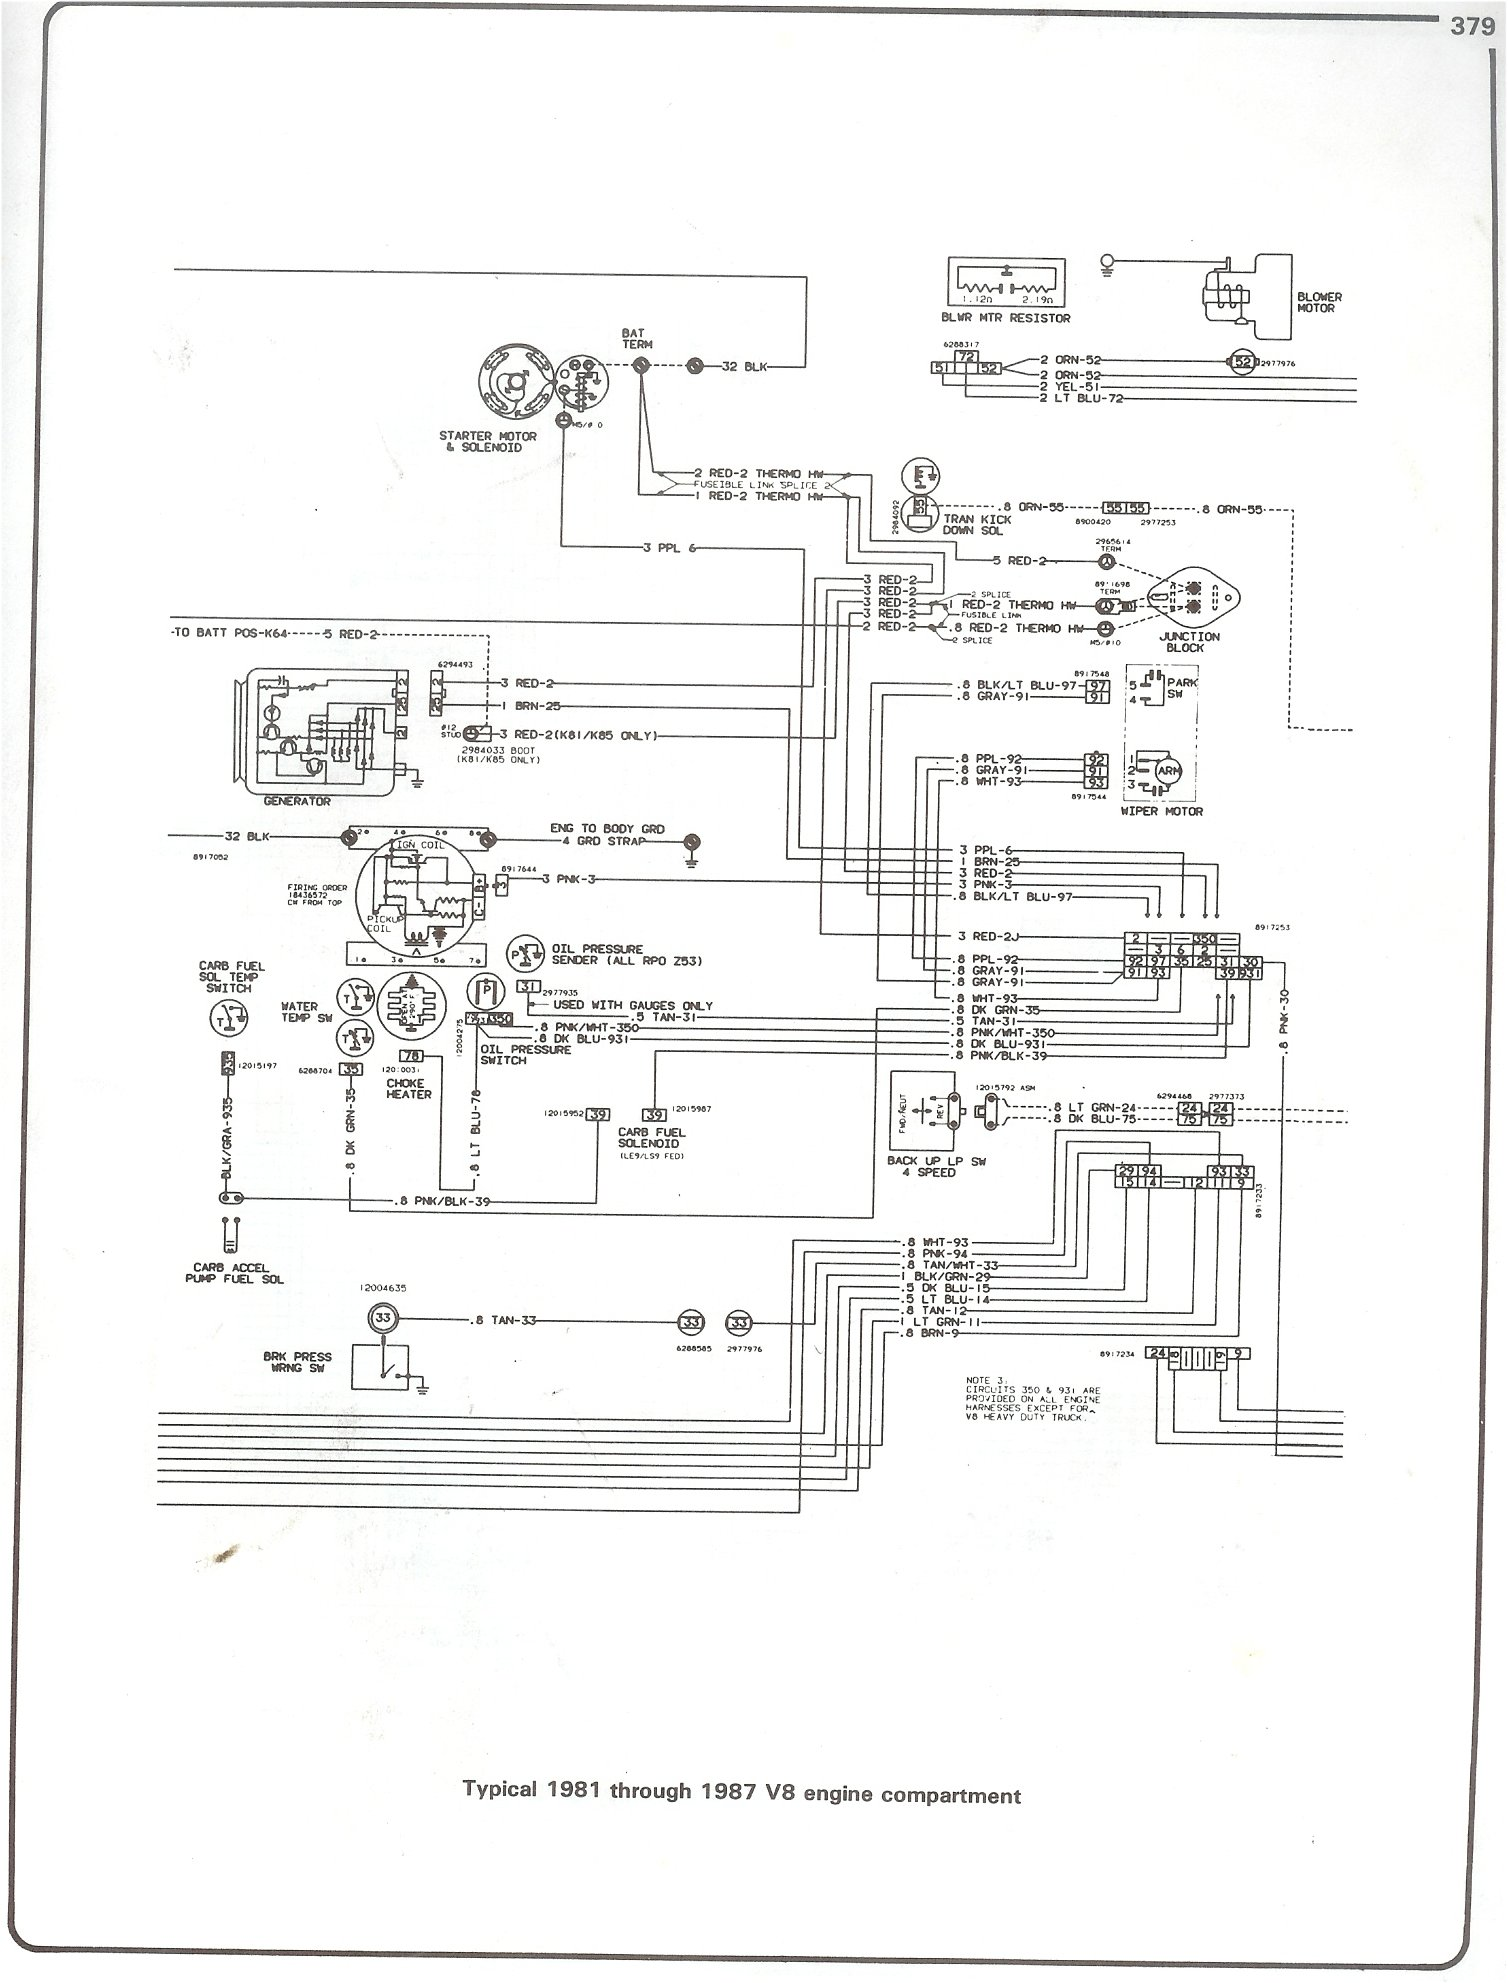 Wiring Diagram For 1979 Charger 1995 Ez Go Gas 83 Chevy Truck Library Rh 48 Hermandadredencion Eu